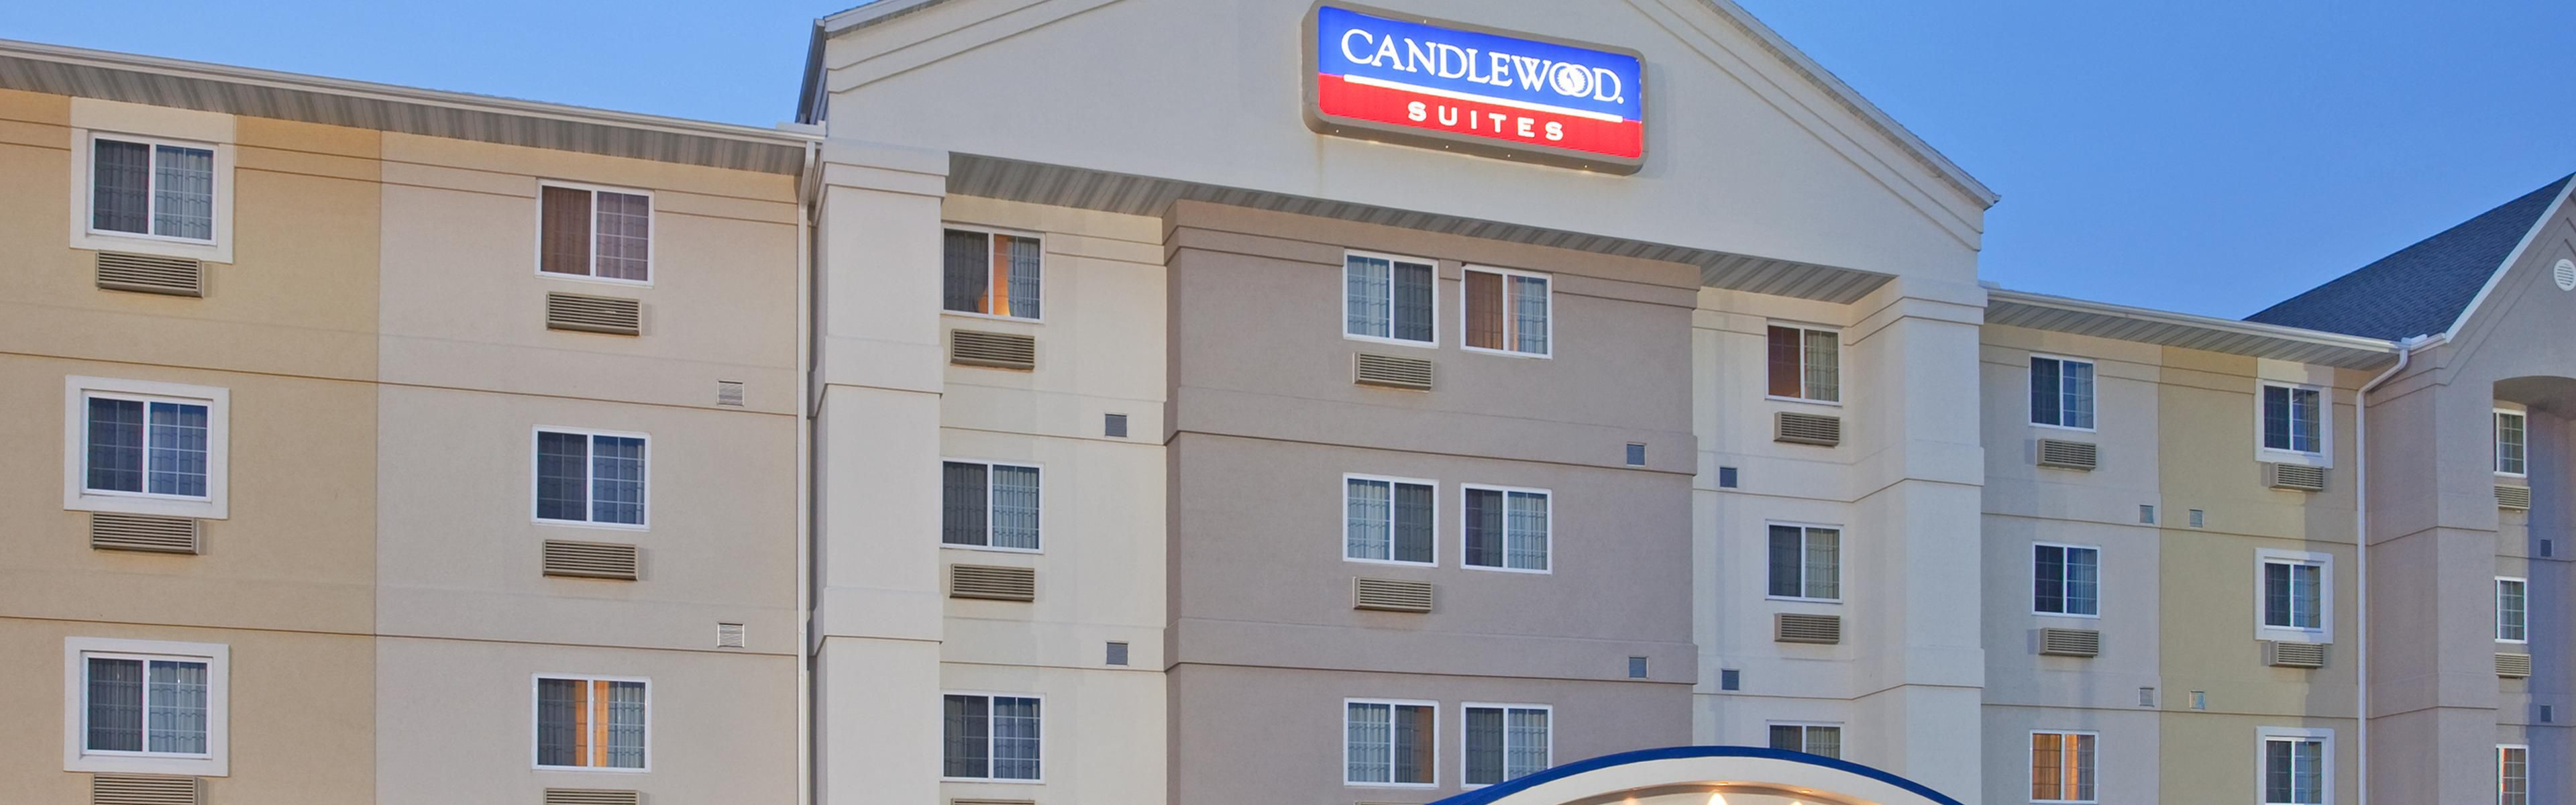 Candlewood Suites Springfield South image 0